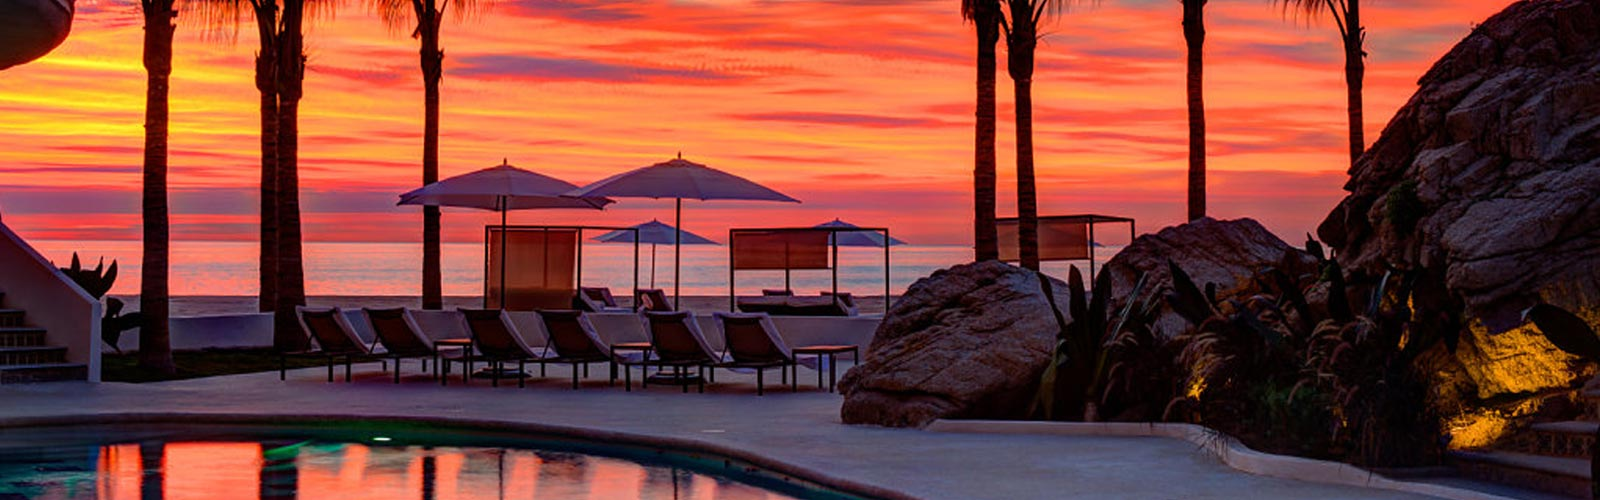 lounge chairs and pool at sunset